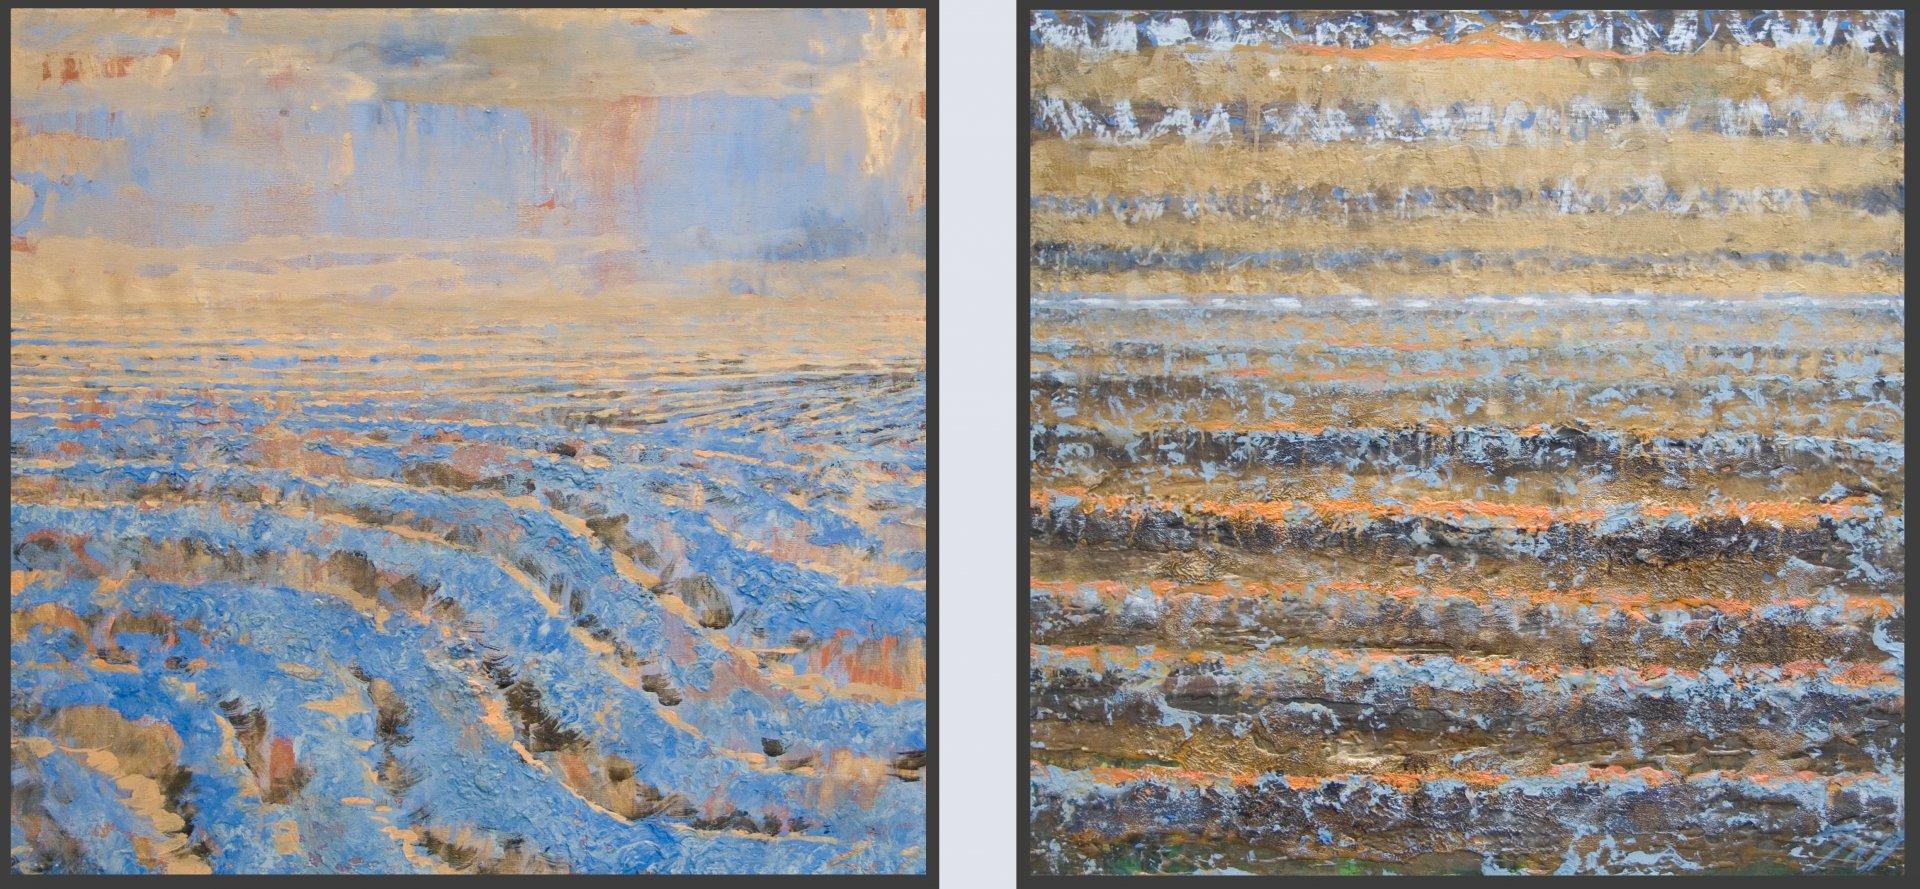 Earth and Sky (diptych)